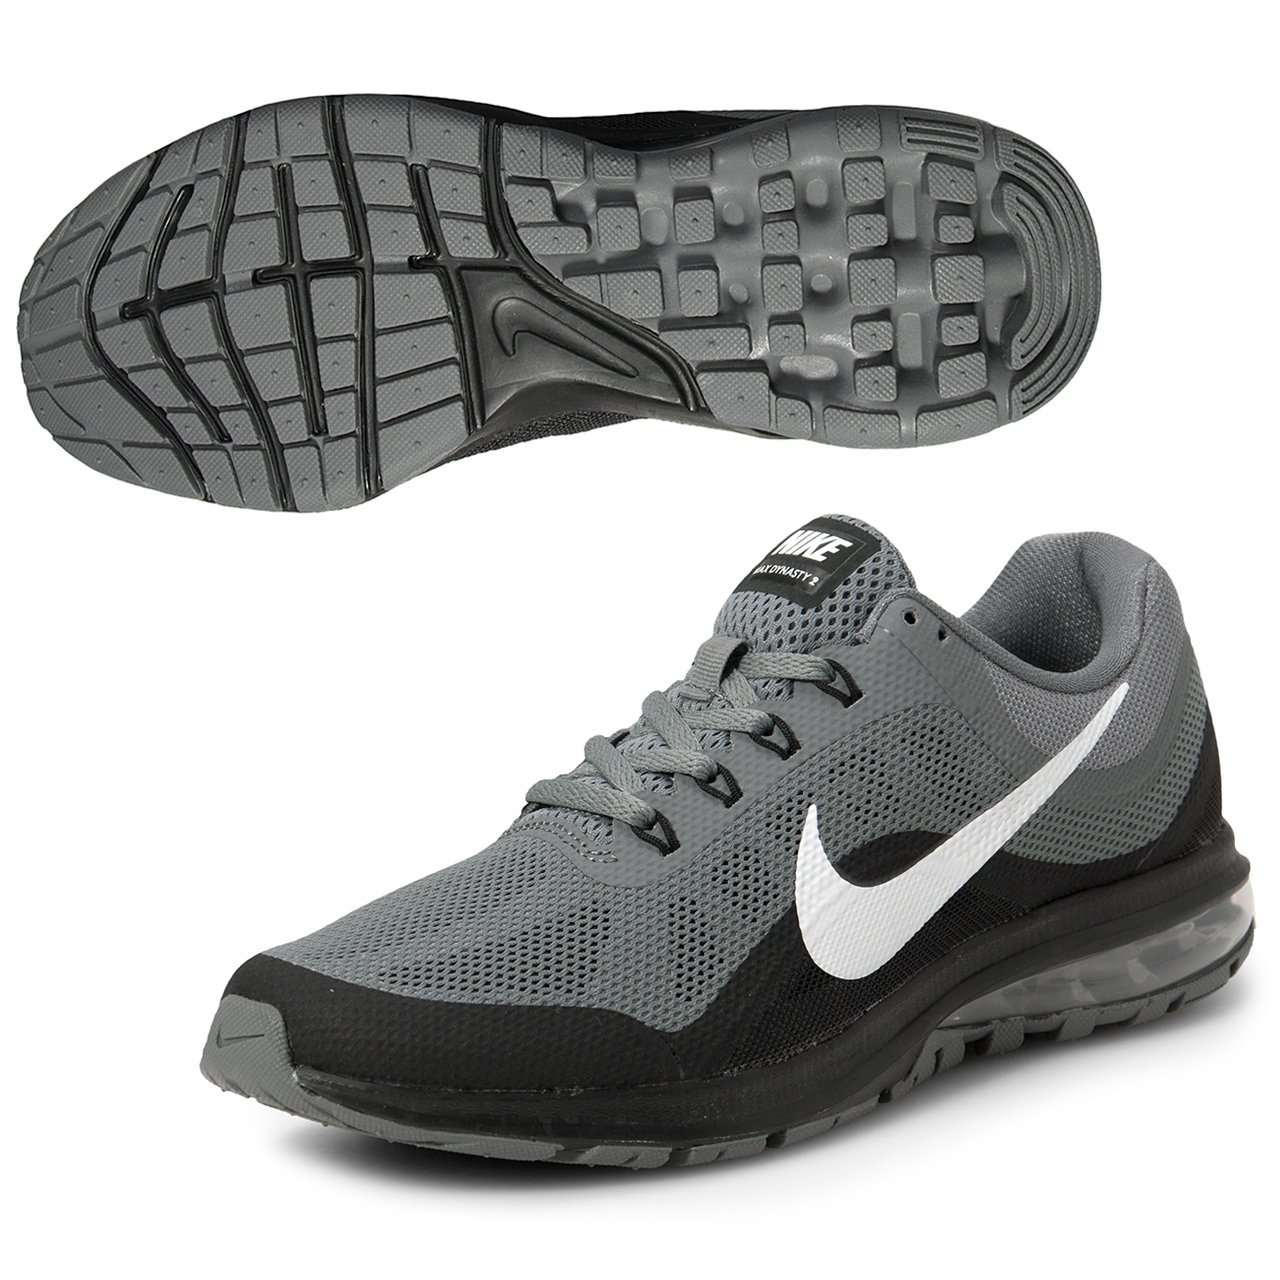 Dynasty 2 Air D Us Nike Running Mens Shoes13 Max POZukiwlXT